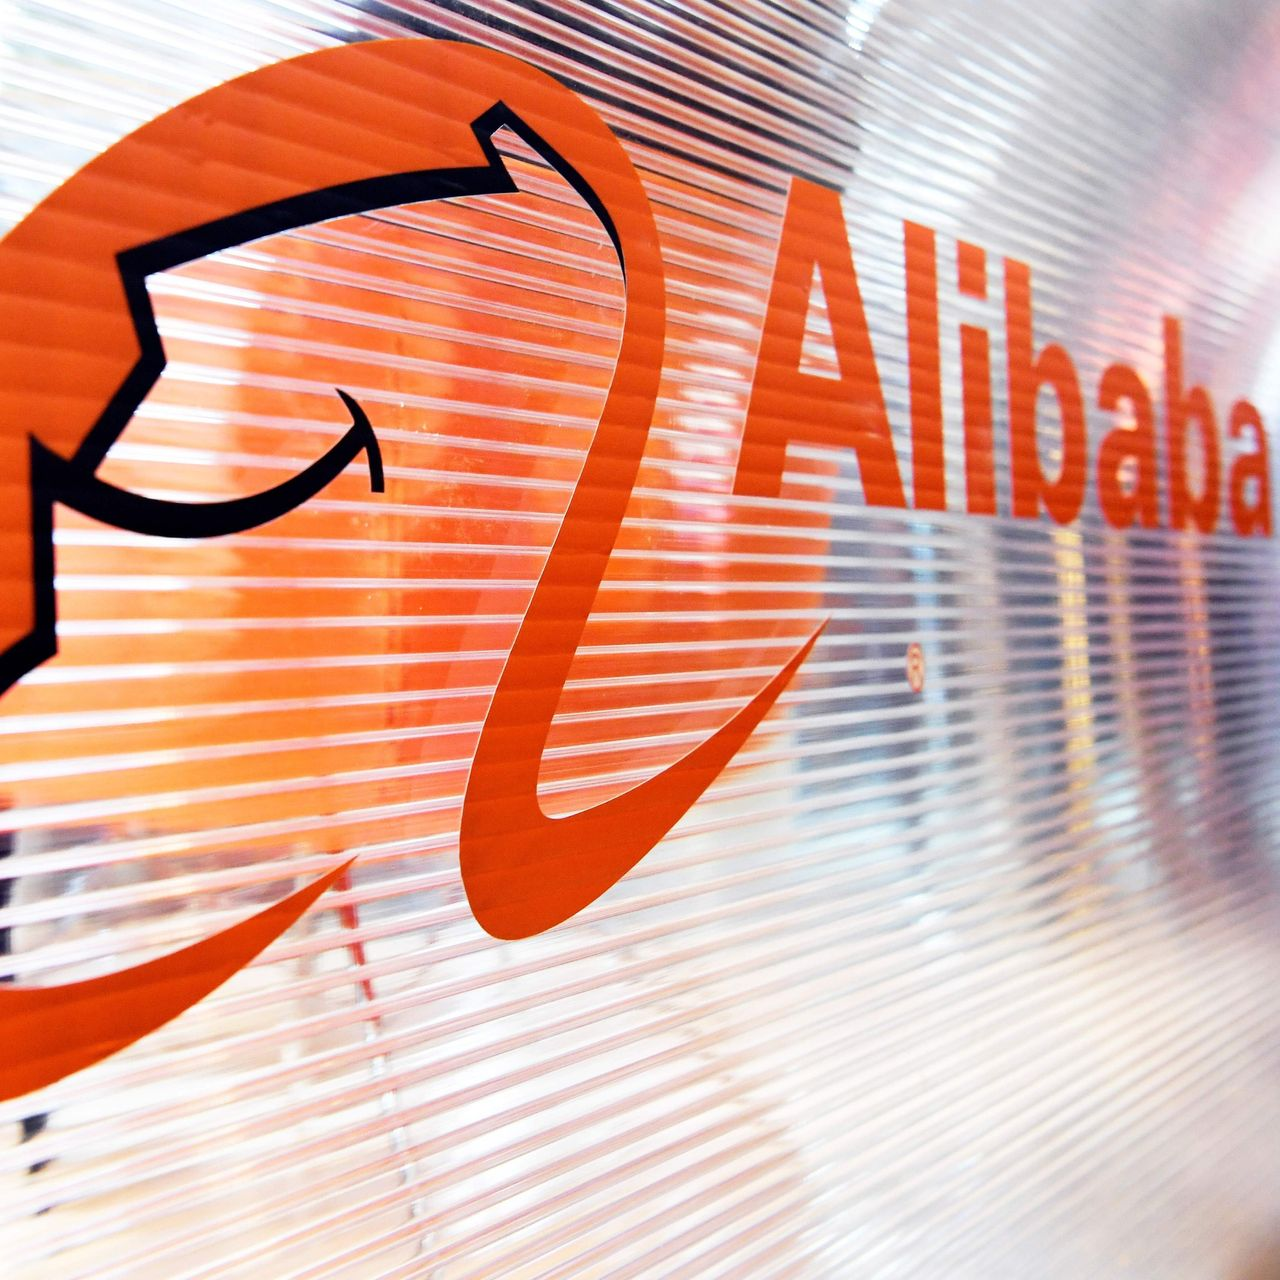 Asian Markets Mostly Higher But Stocks Fall In China Amid Alibaba Antitrust Probe Marketwatch Find the latest alibaba group holding limited (baba) stock quote, history, news and other vital information to help you with your stock trading and investing. asian markets mostly higher but stocks